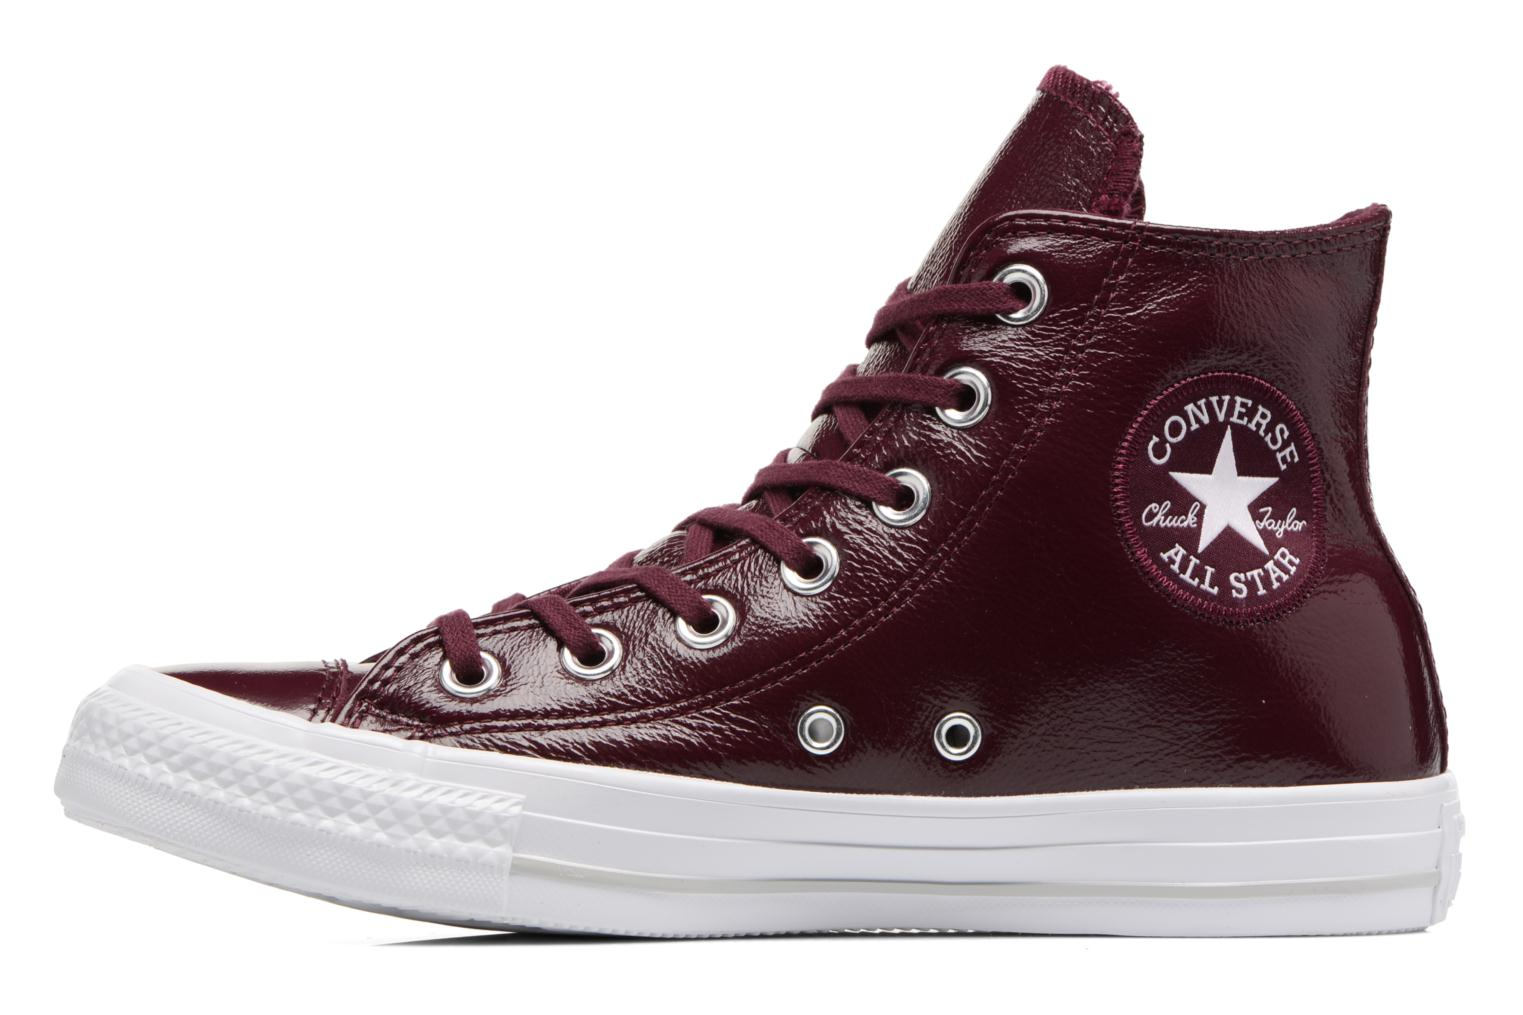 Baskets Converse Chuck Taylor All Star Crinkled Patent Leather Hi Bordeaux vue face